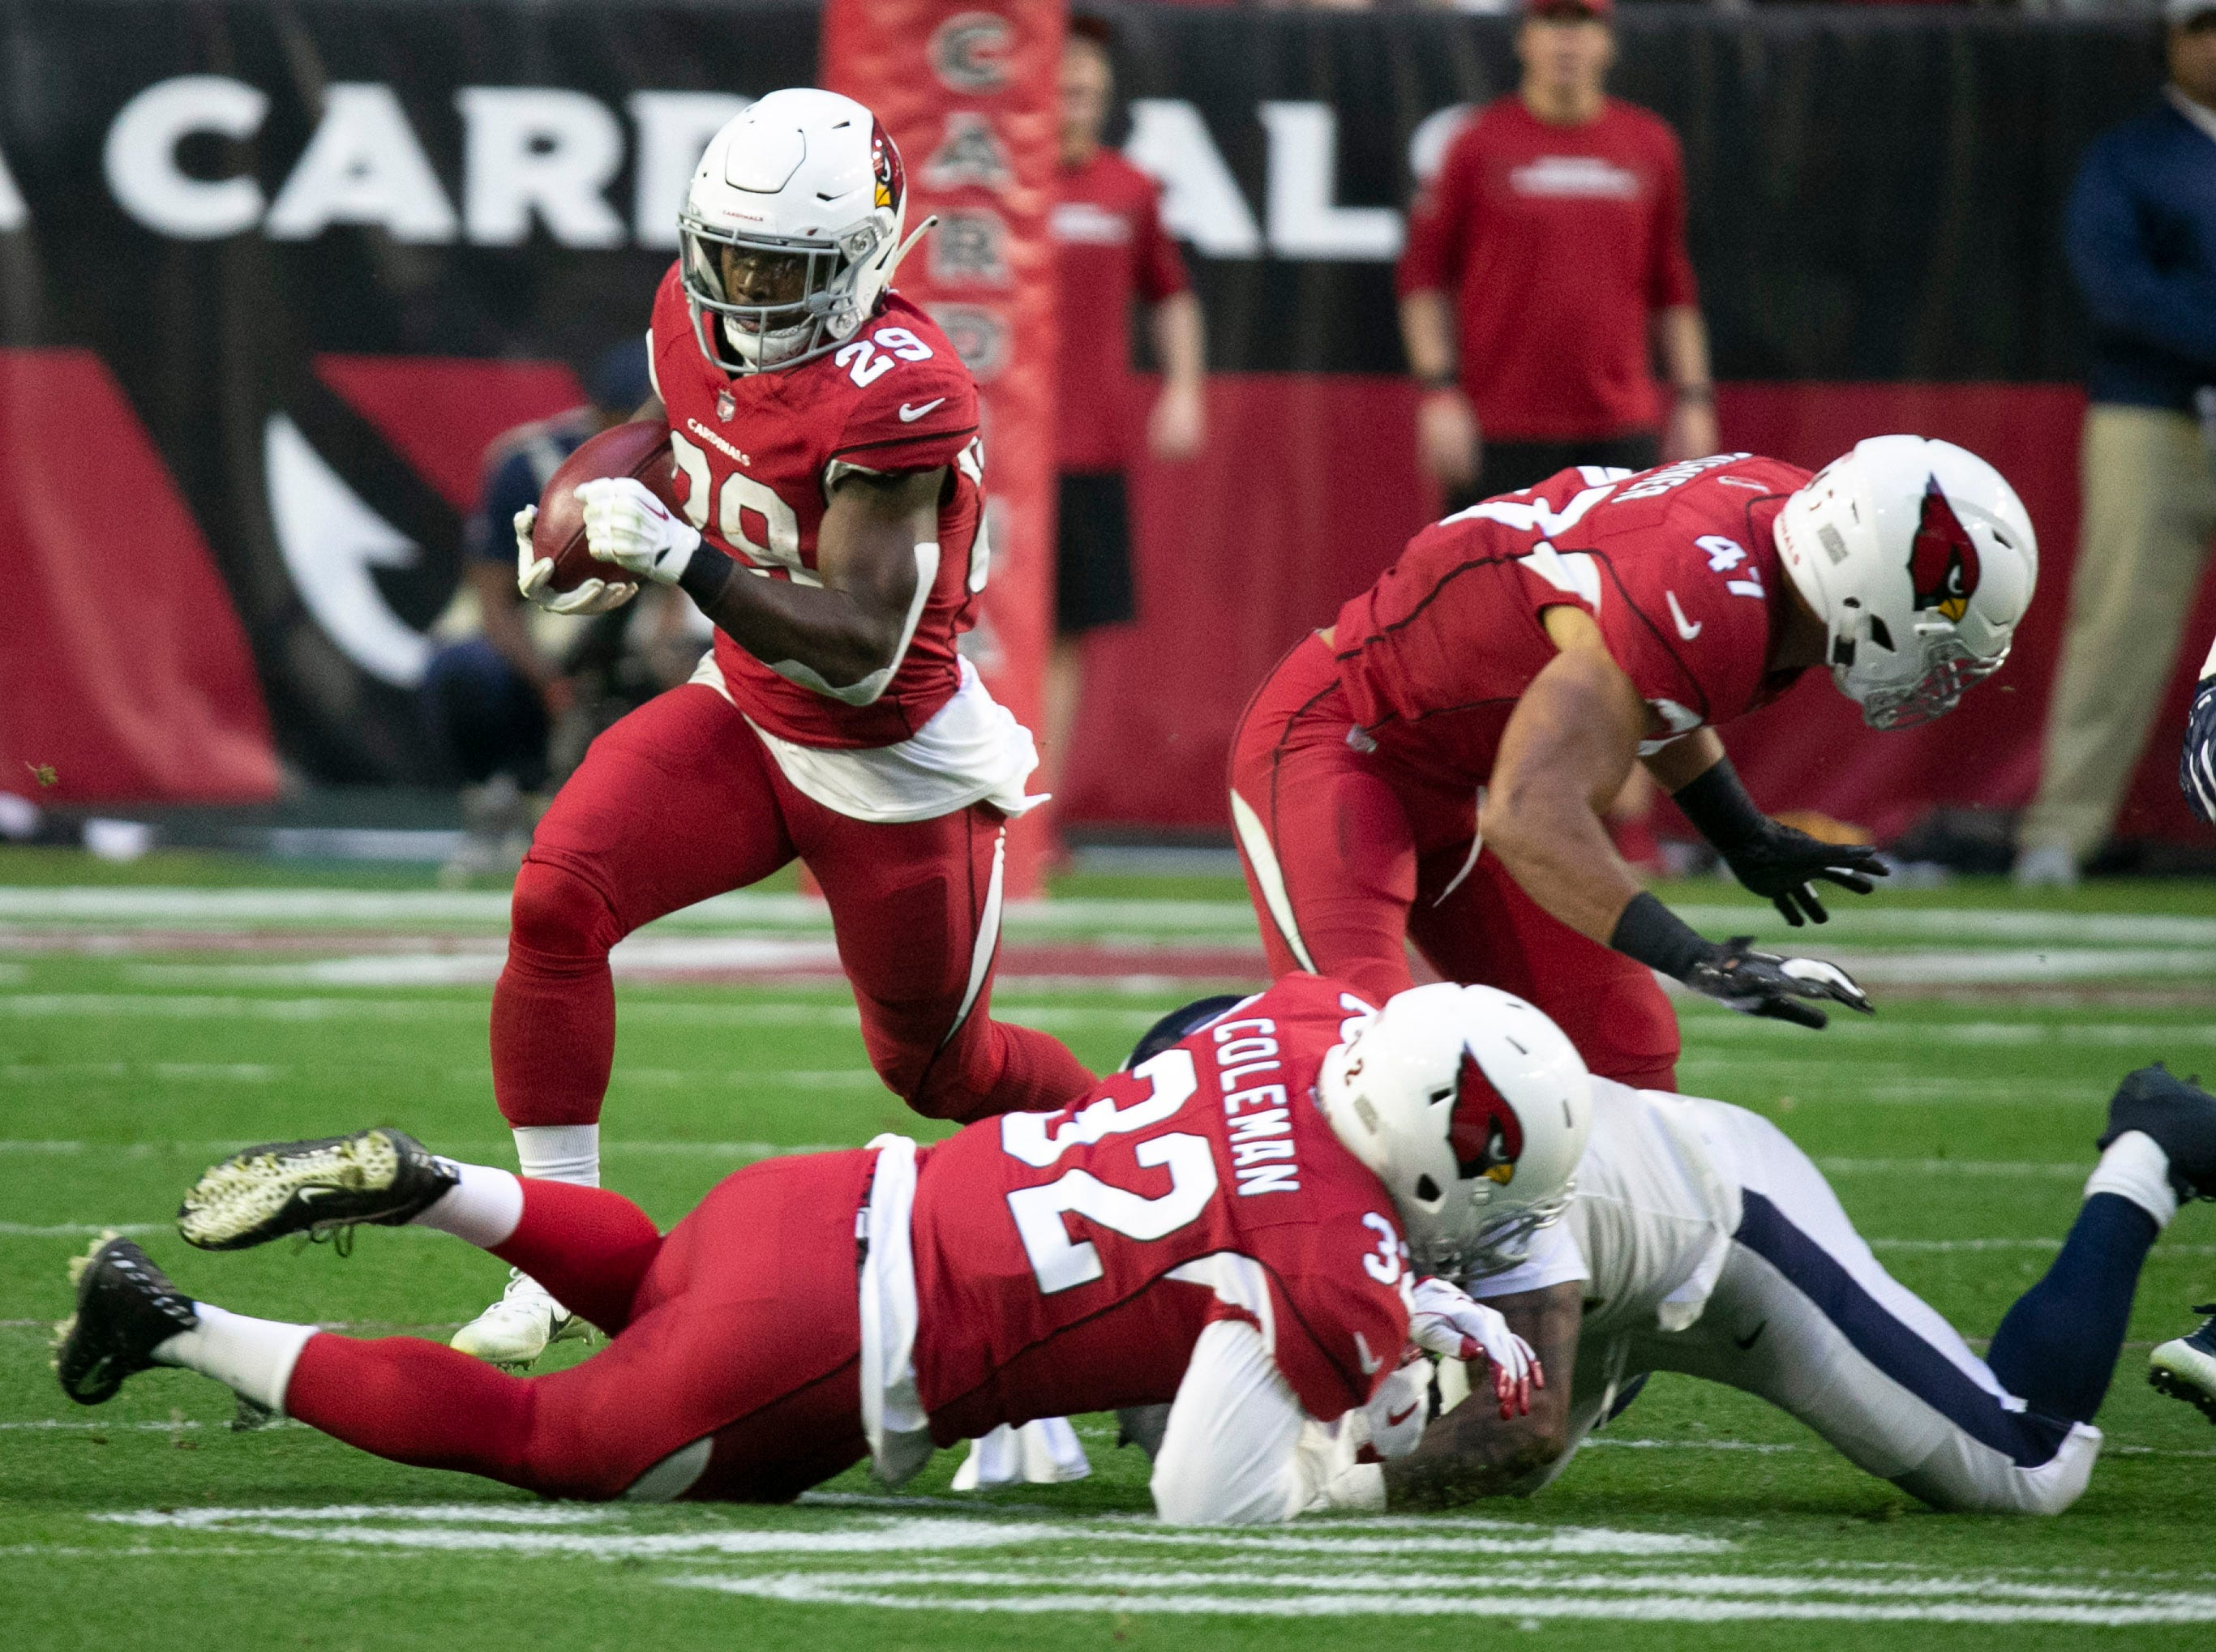 Cardinals running back Chase Edmonds carries the ball against the Rams during the fourth quarter of the NFL game at State Farm Stadium in Glendale on Sunday, December 23, 2018.